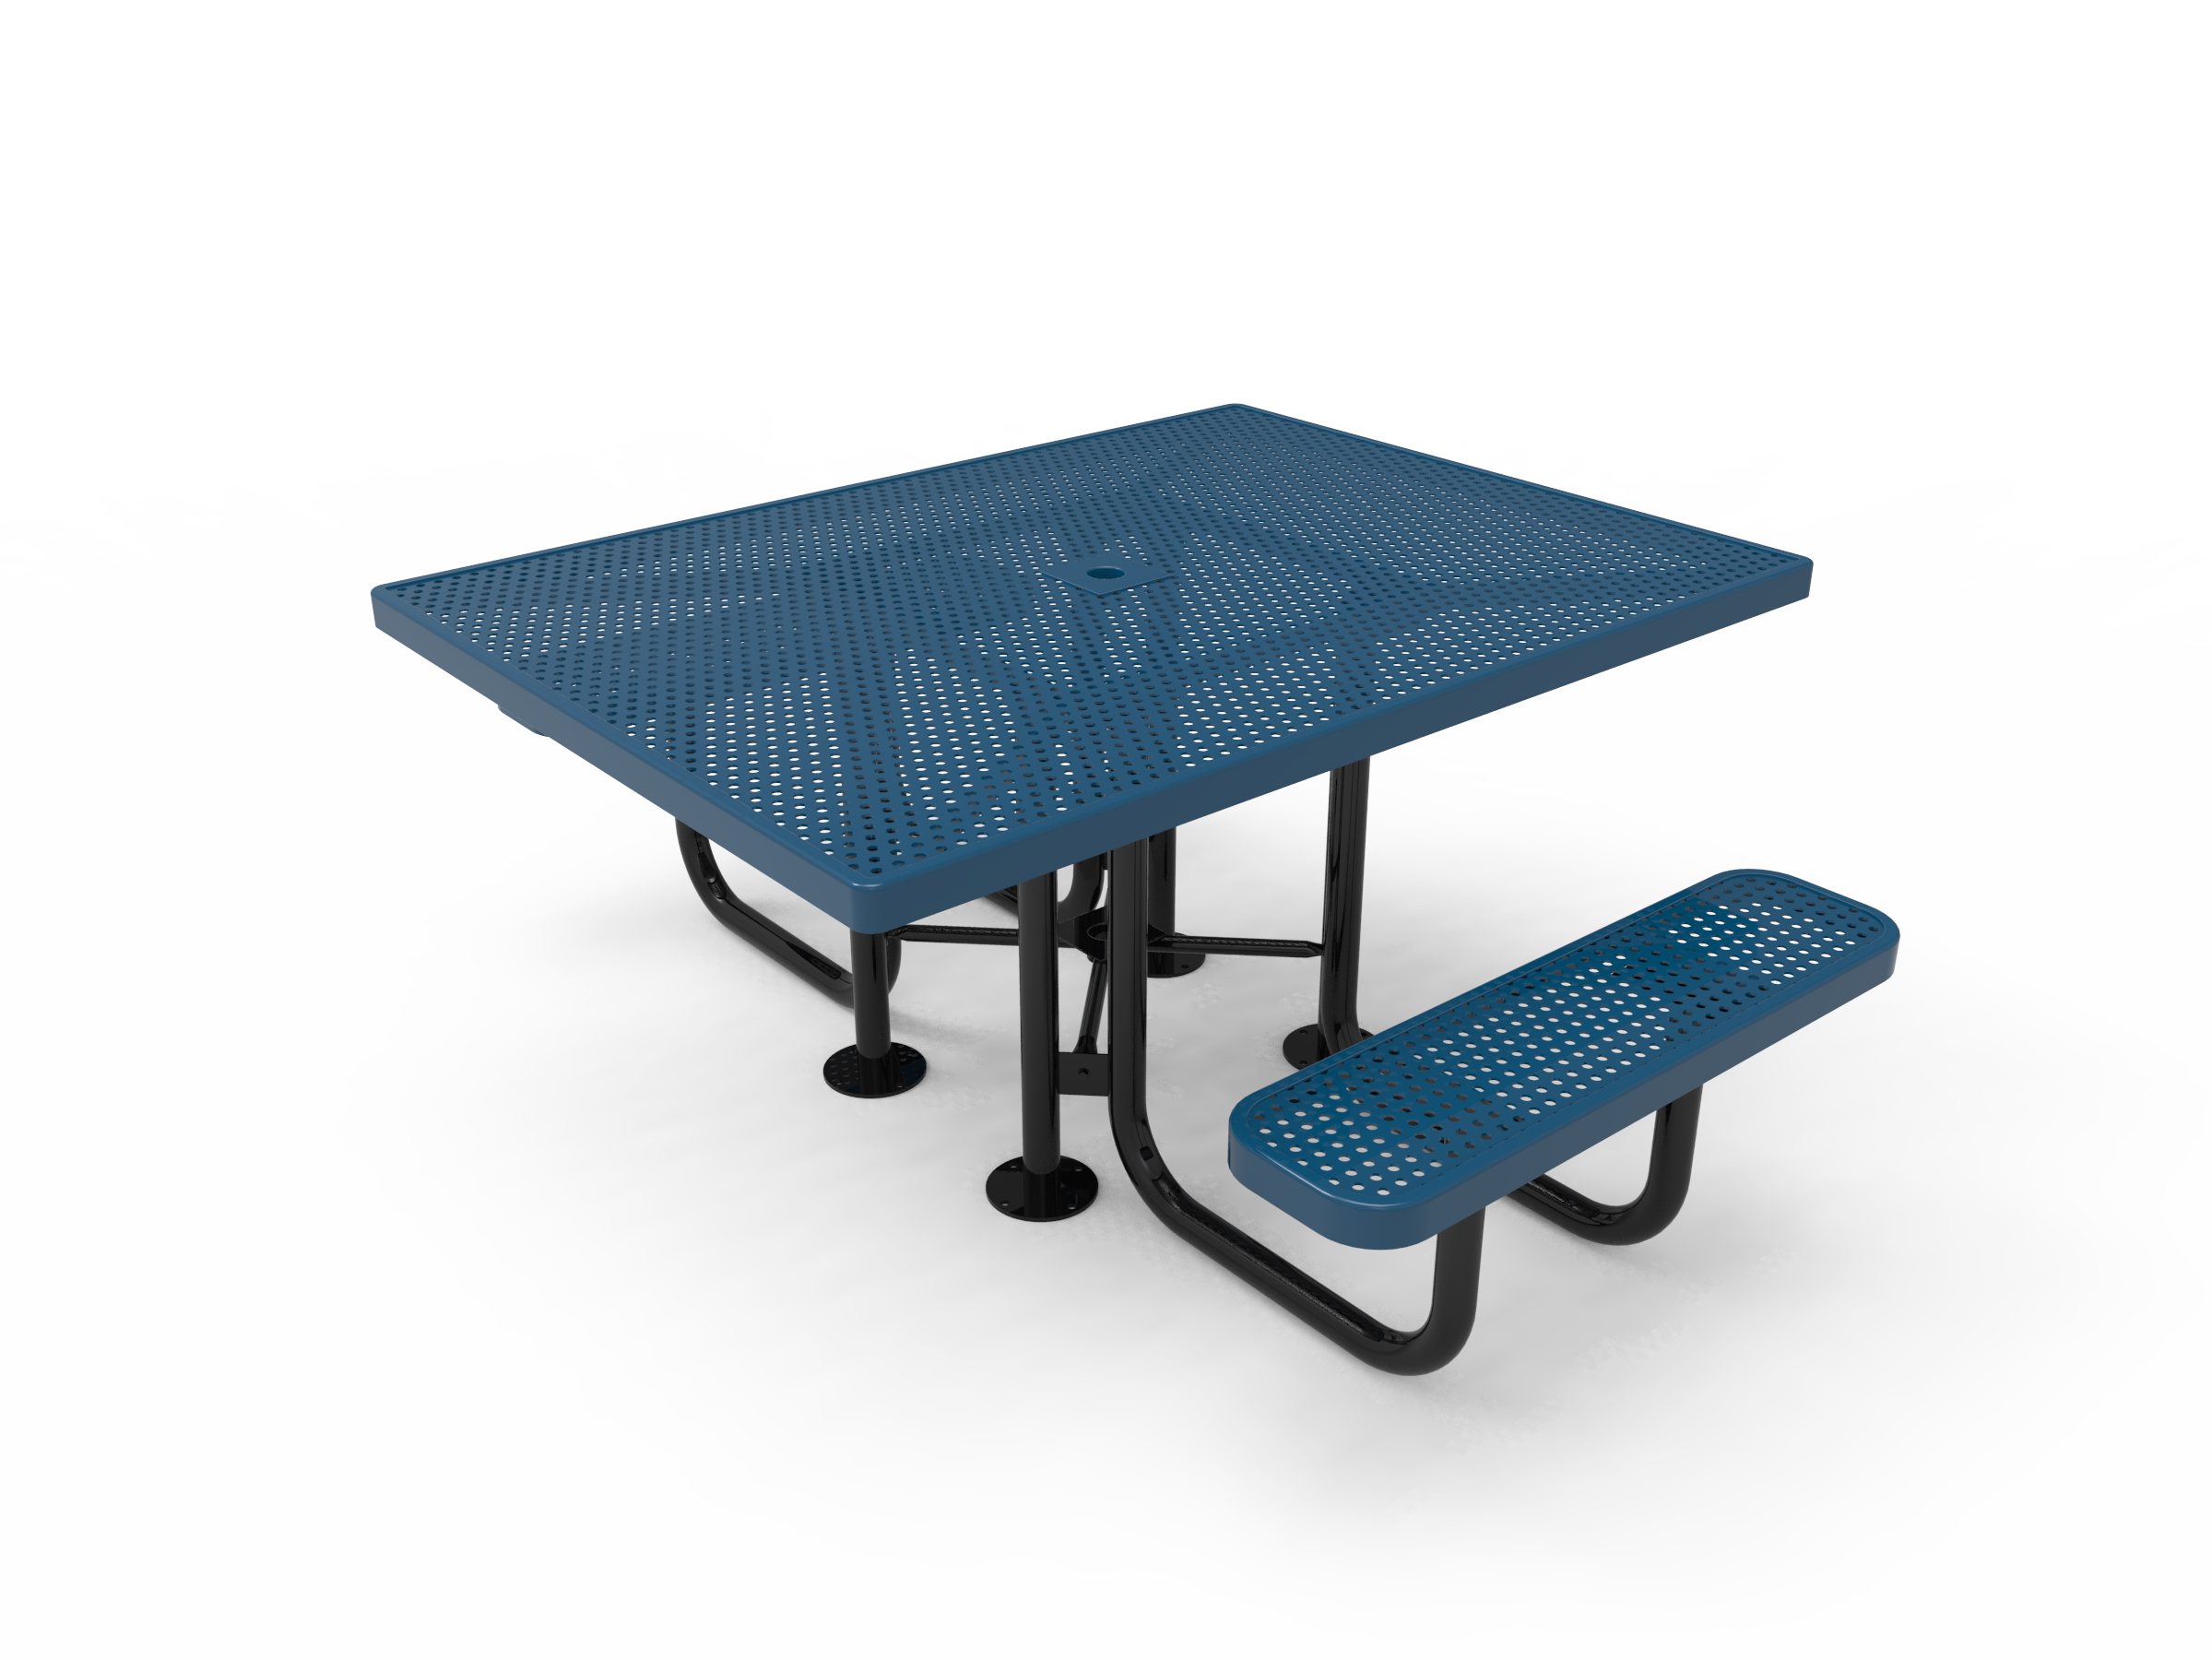 Lexington Square Portable Table - ADA Accessible, Frame with Powder Coat Finish, Top and Seats with Advanced DuraLex Coating